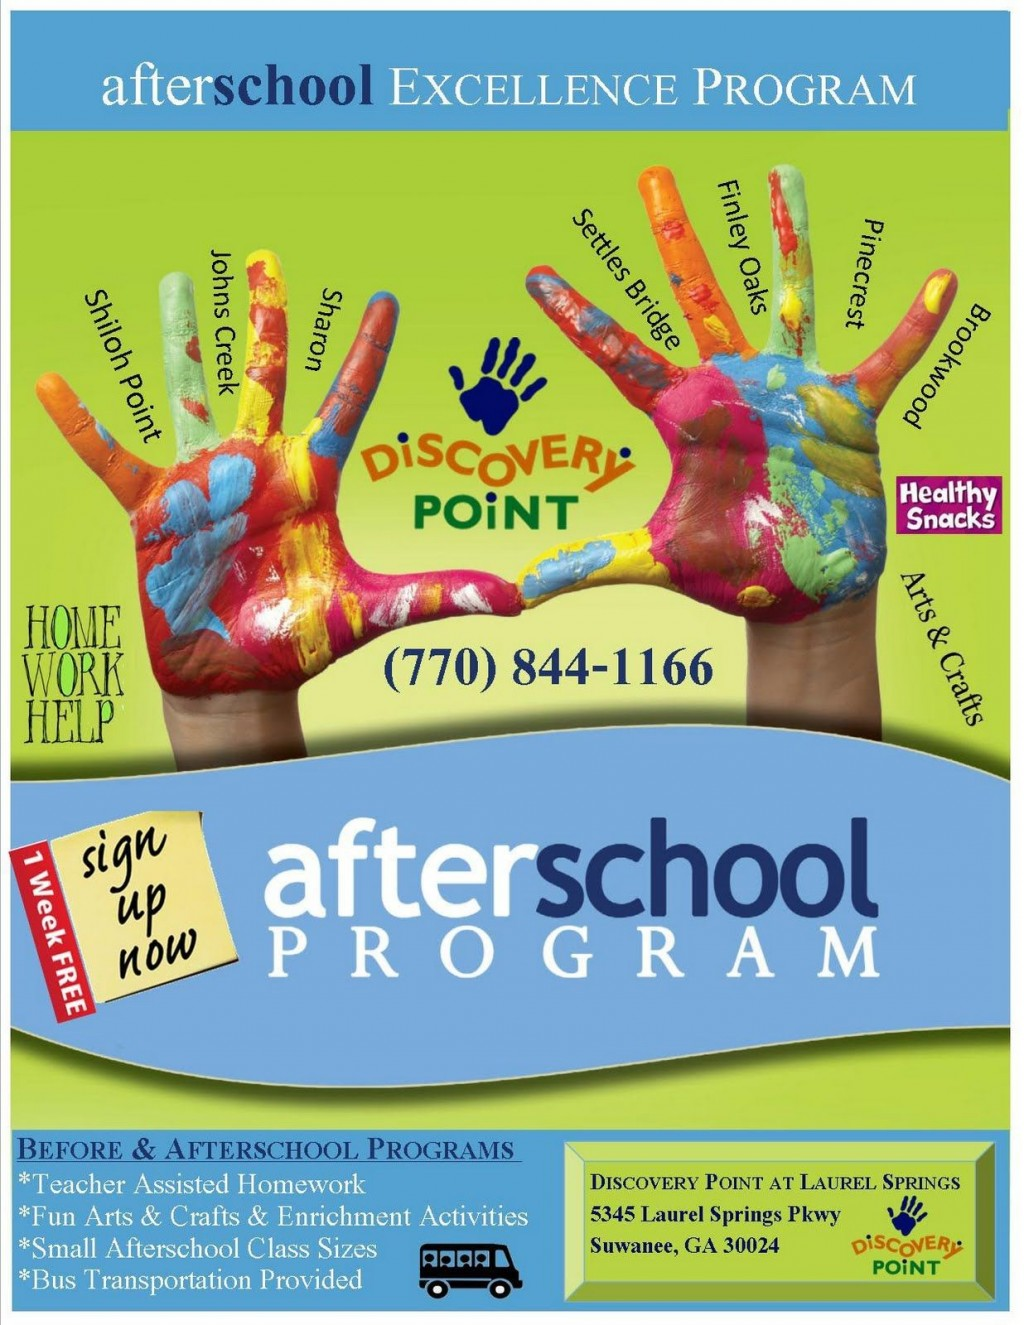 004 Amazing Free After School Program Flyer Template Inspiration Large